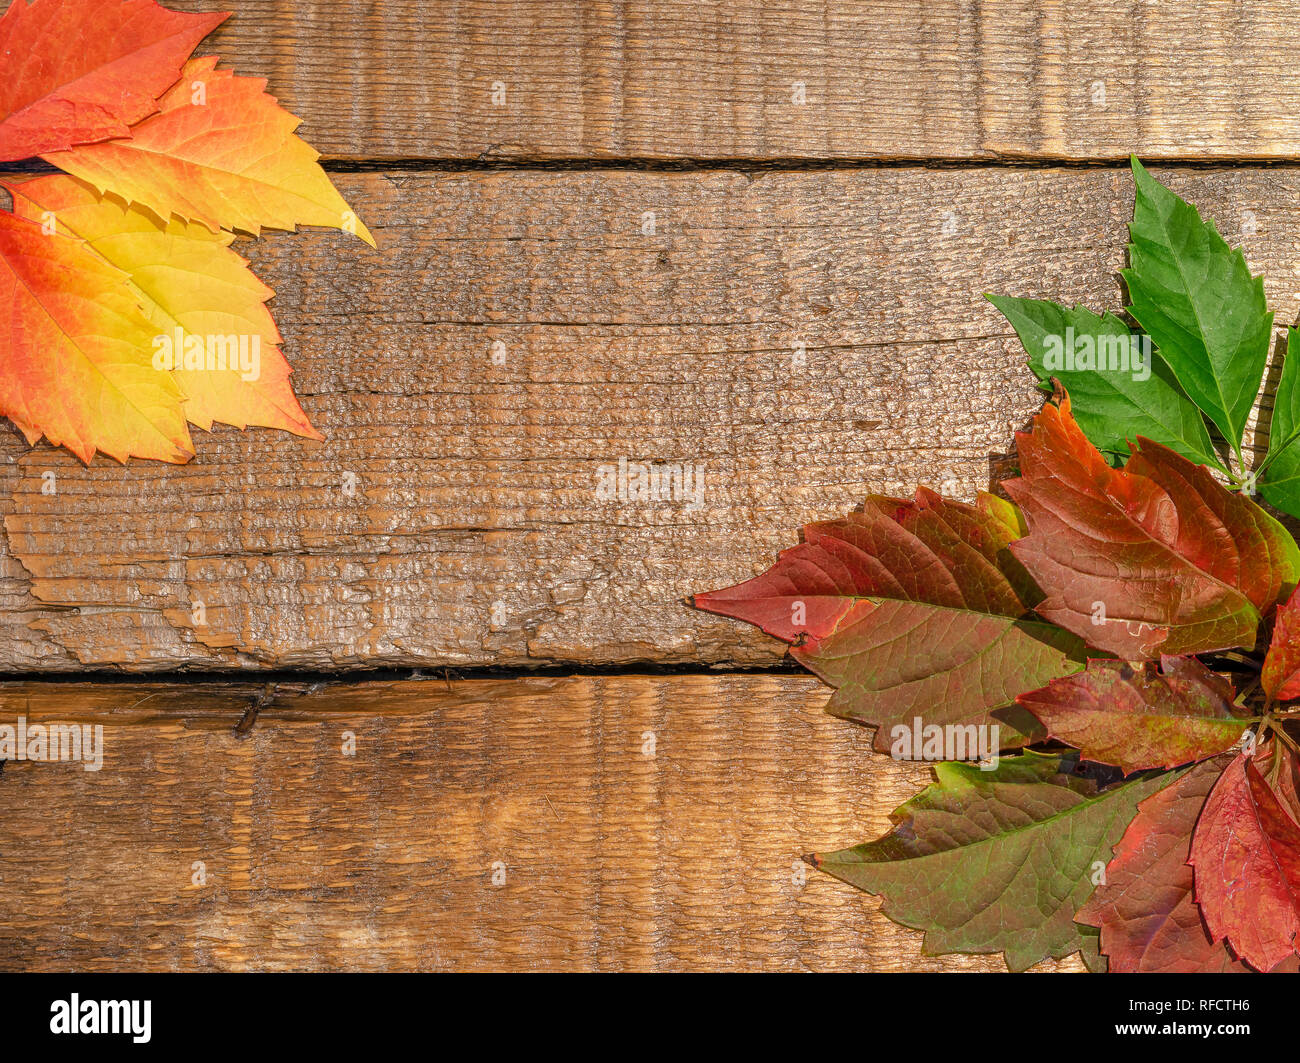 Rustic old barn wood background background with autumn leaves and copy space. - Stock Image